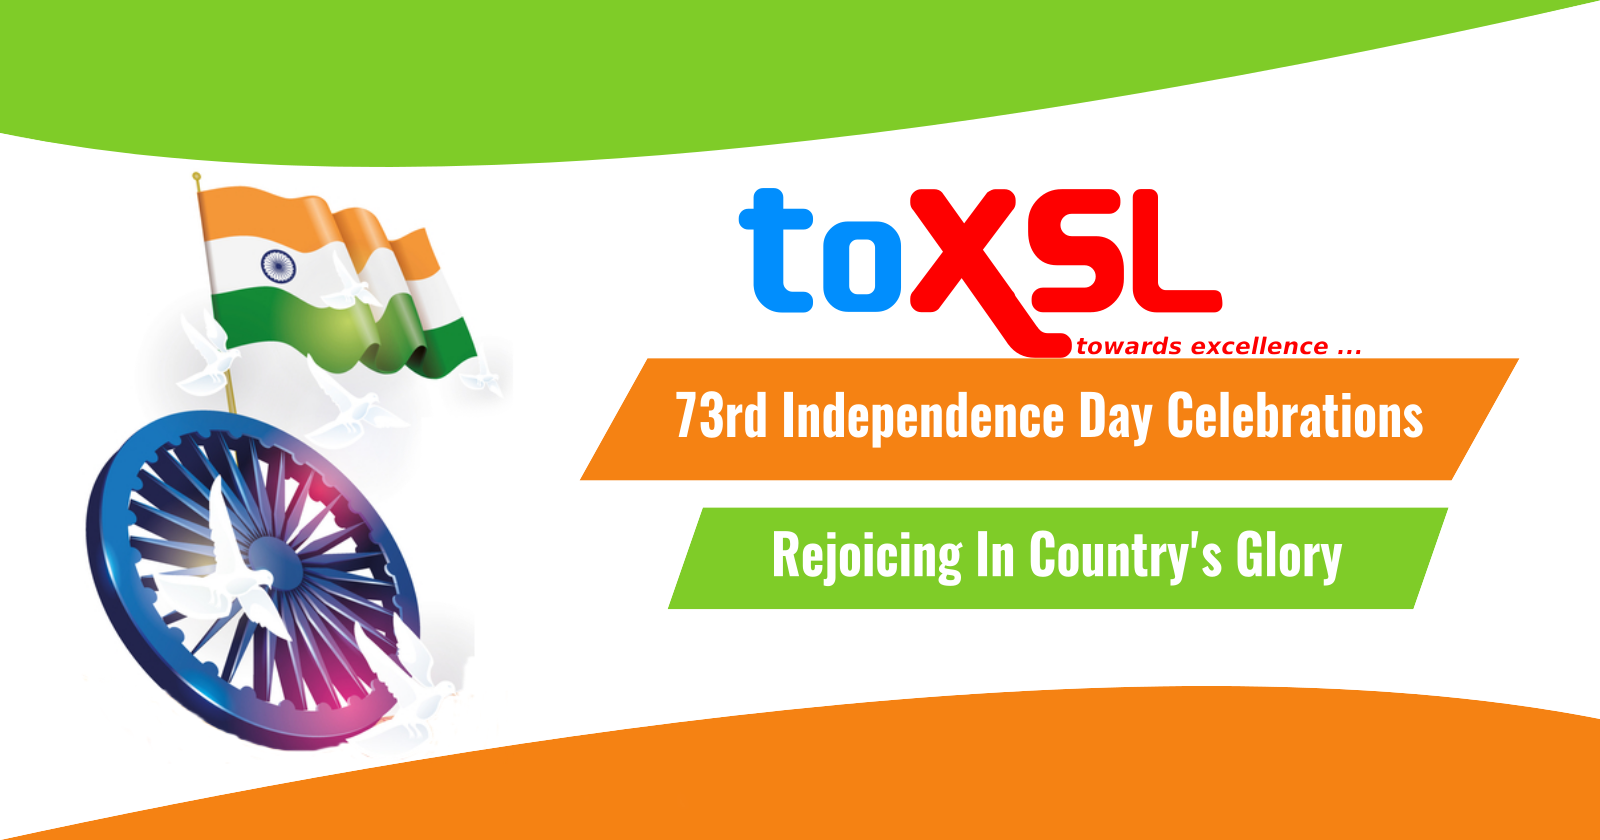 73rd Independence Day Celebrations: Rejoicing In Country's Glory